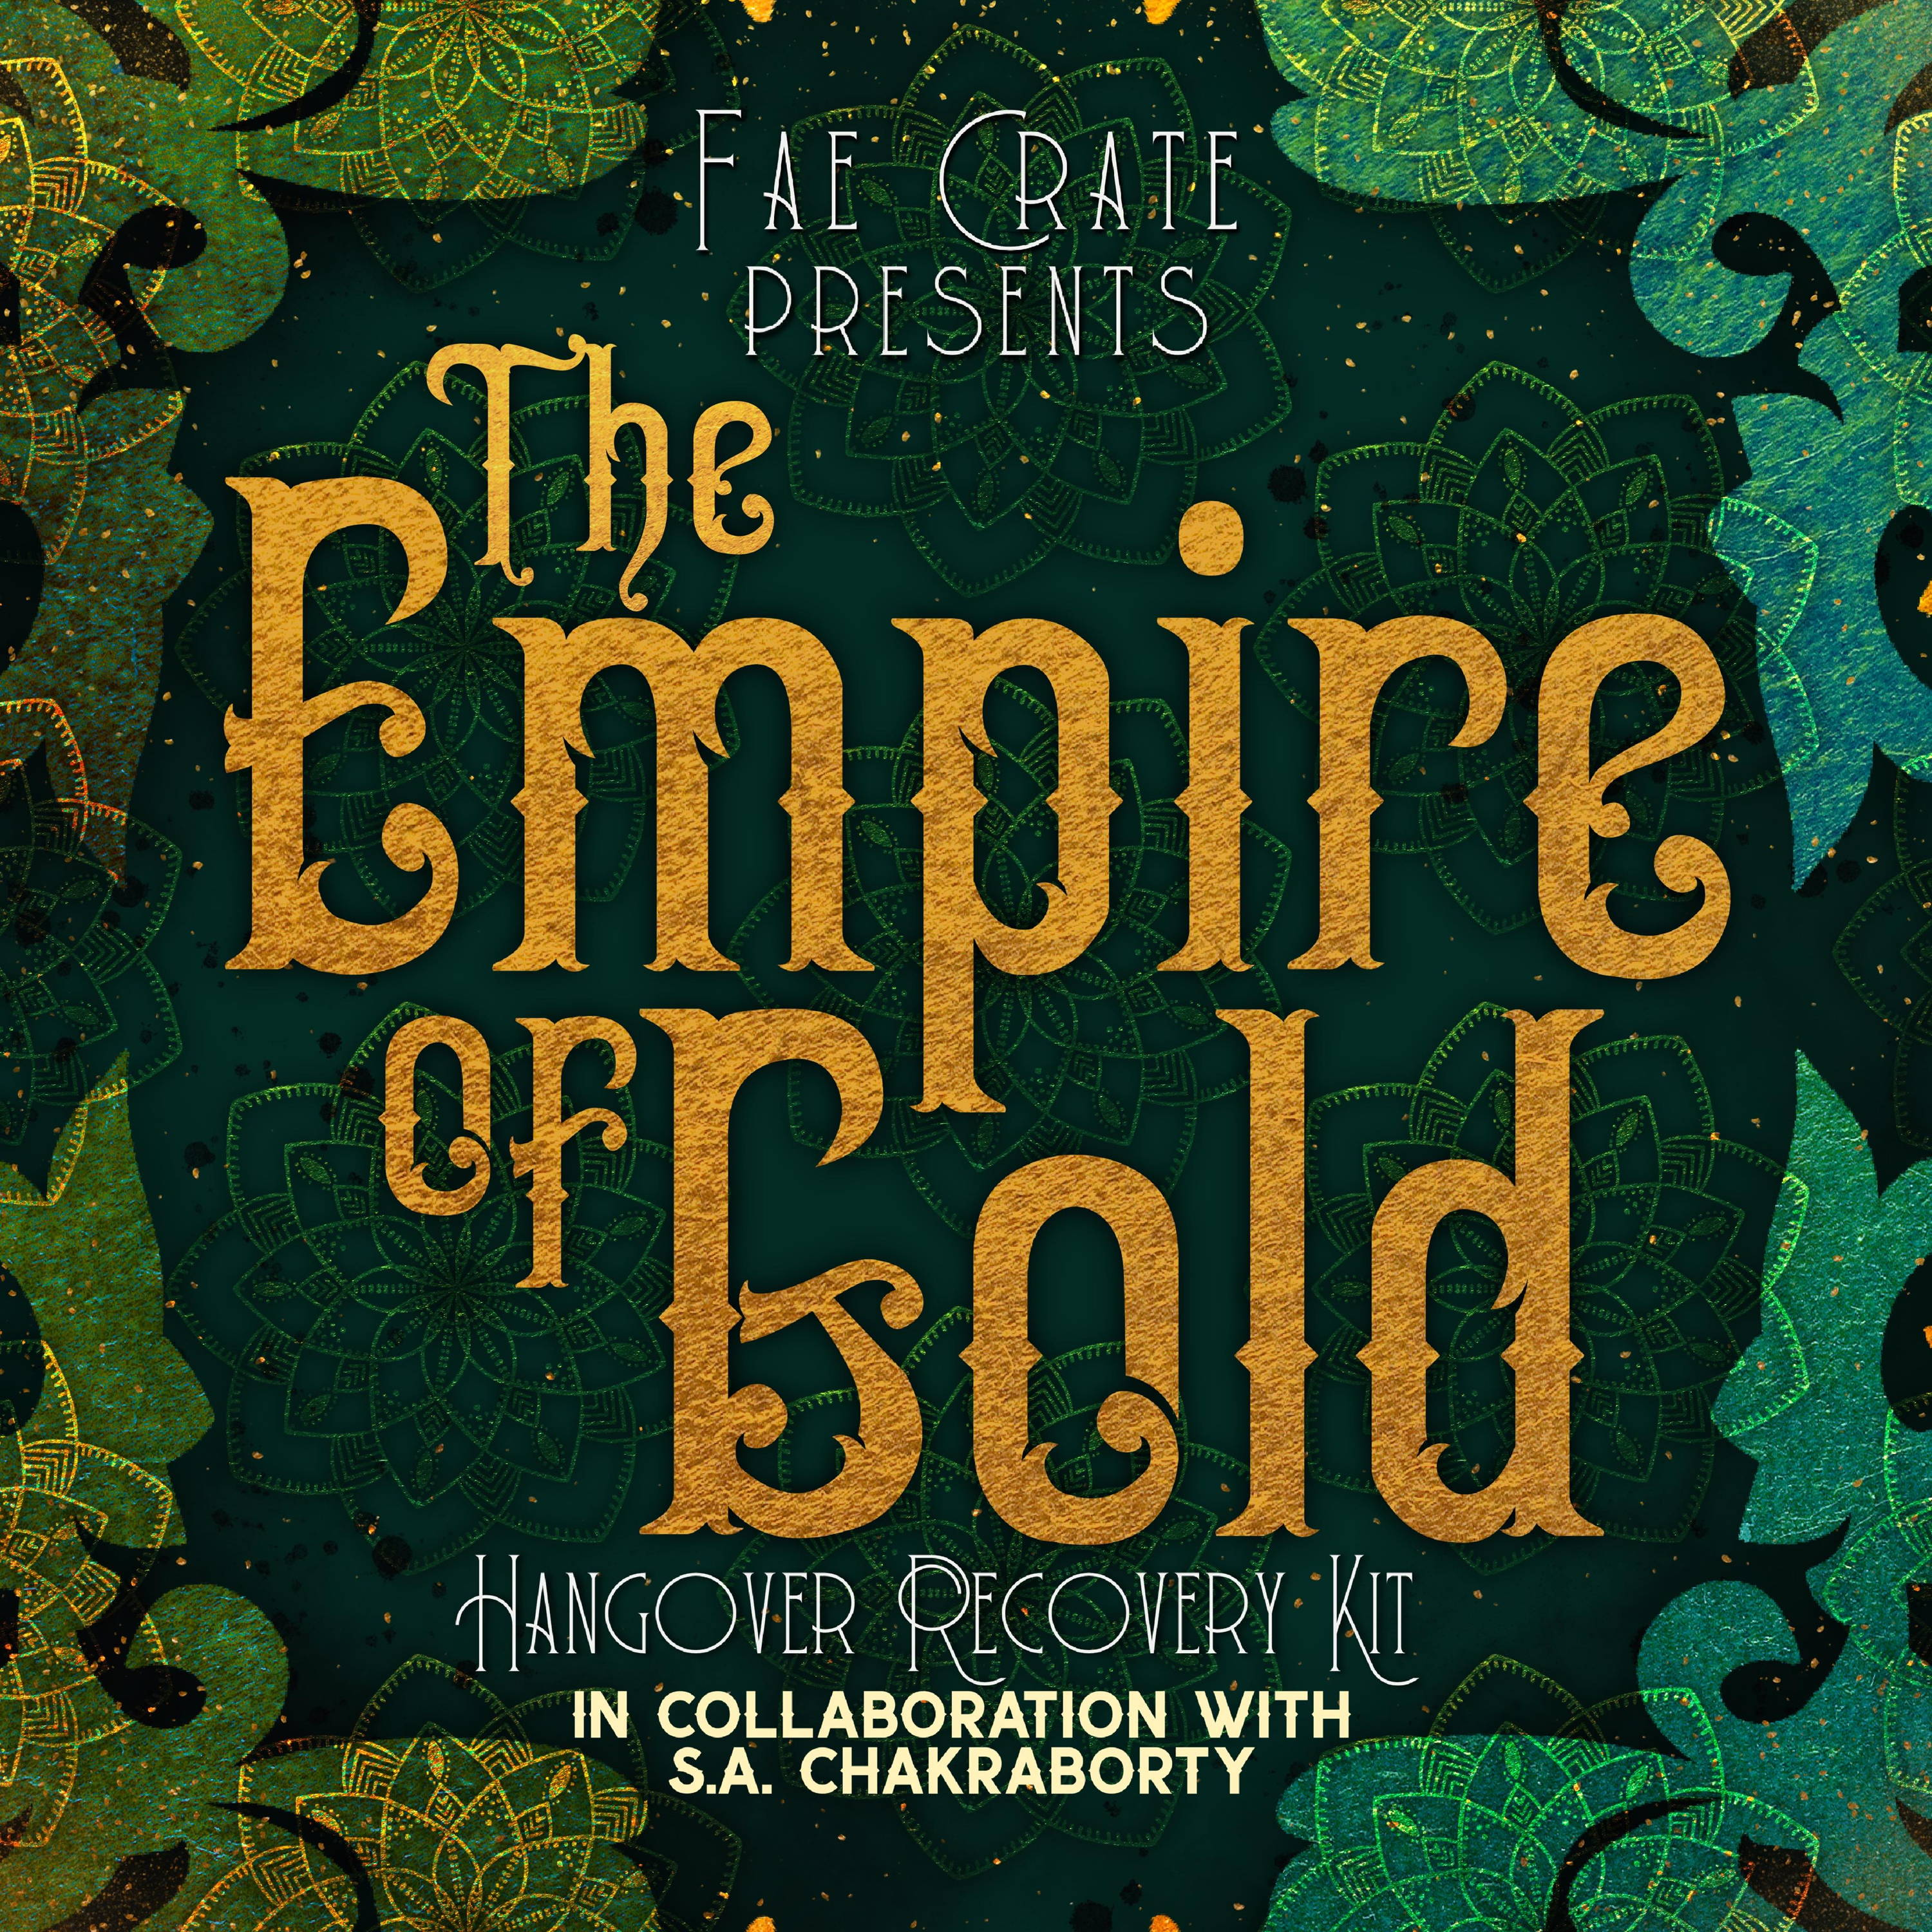 Fae Crate Presents The Empire of Gold Hangover Recovery Kit in Collaboration with S.A. Chakraborty